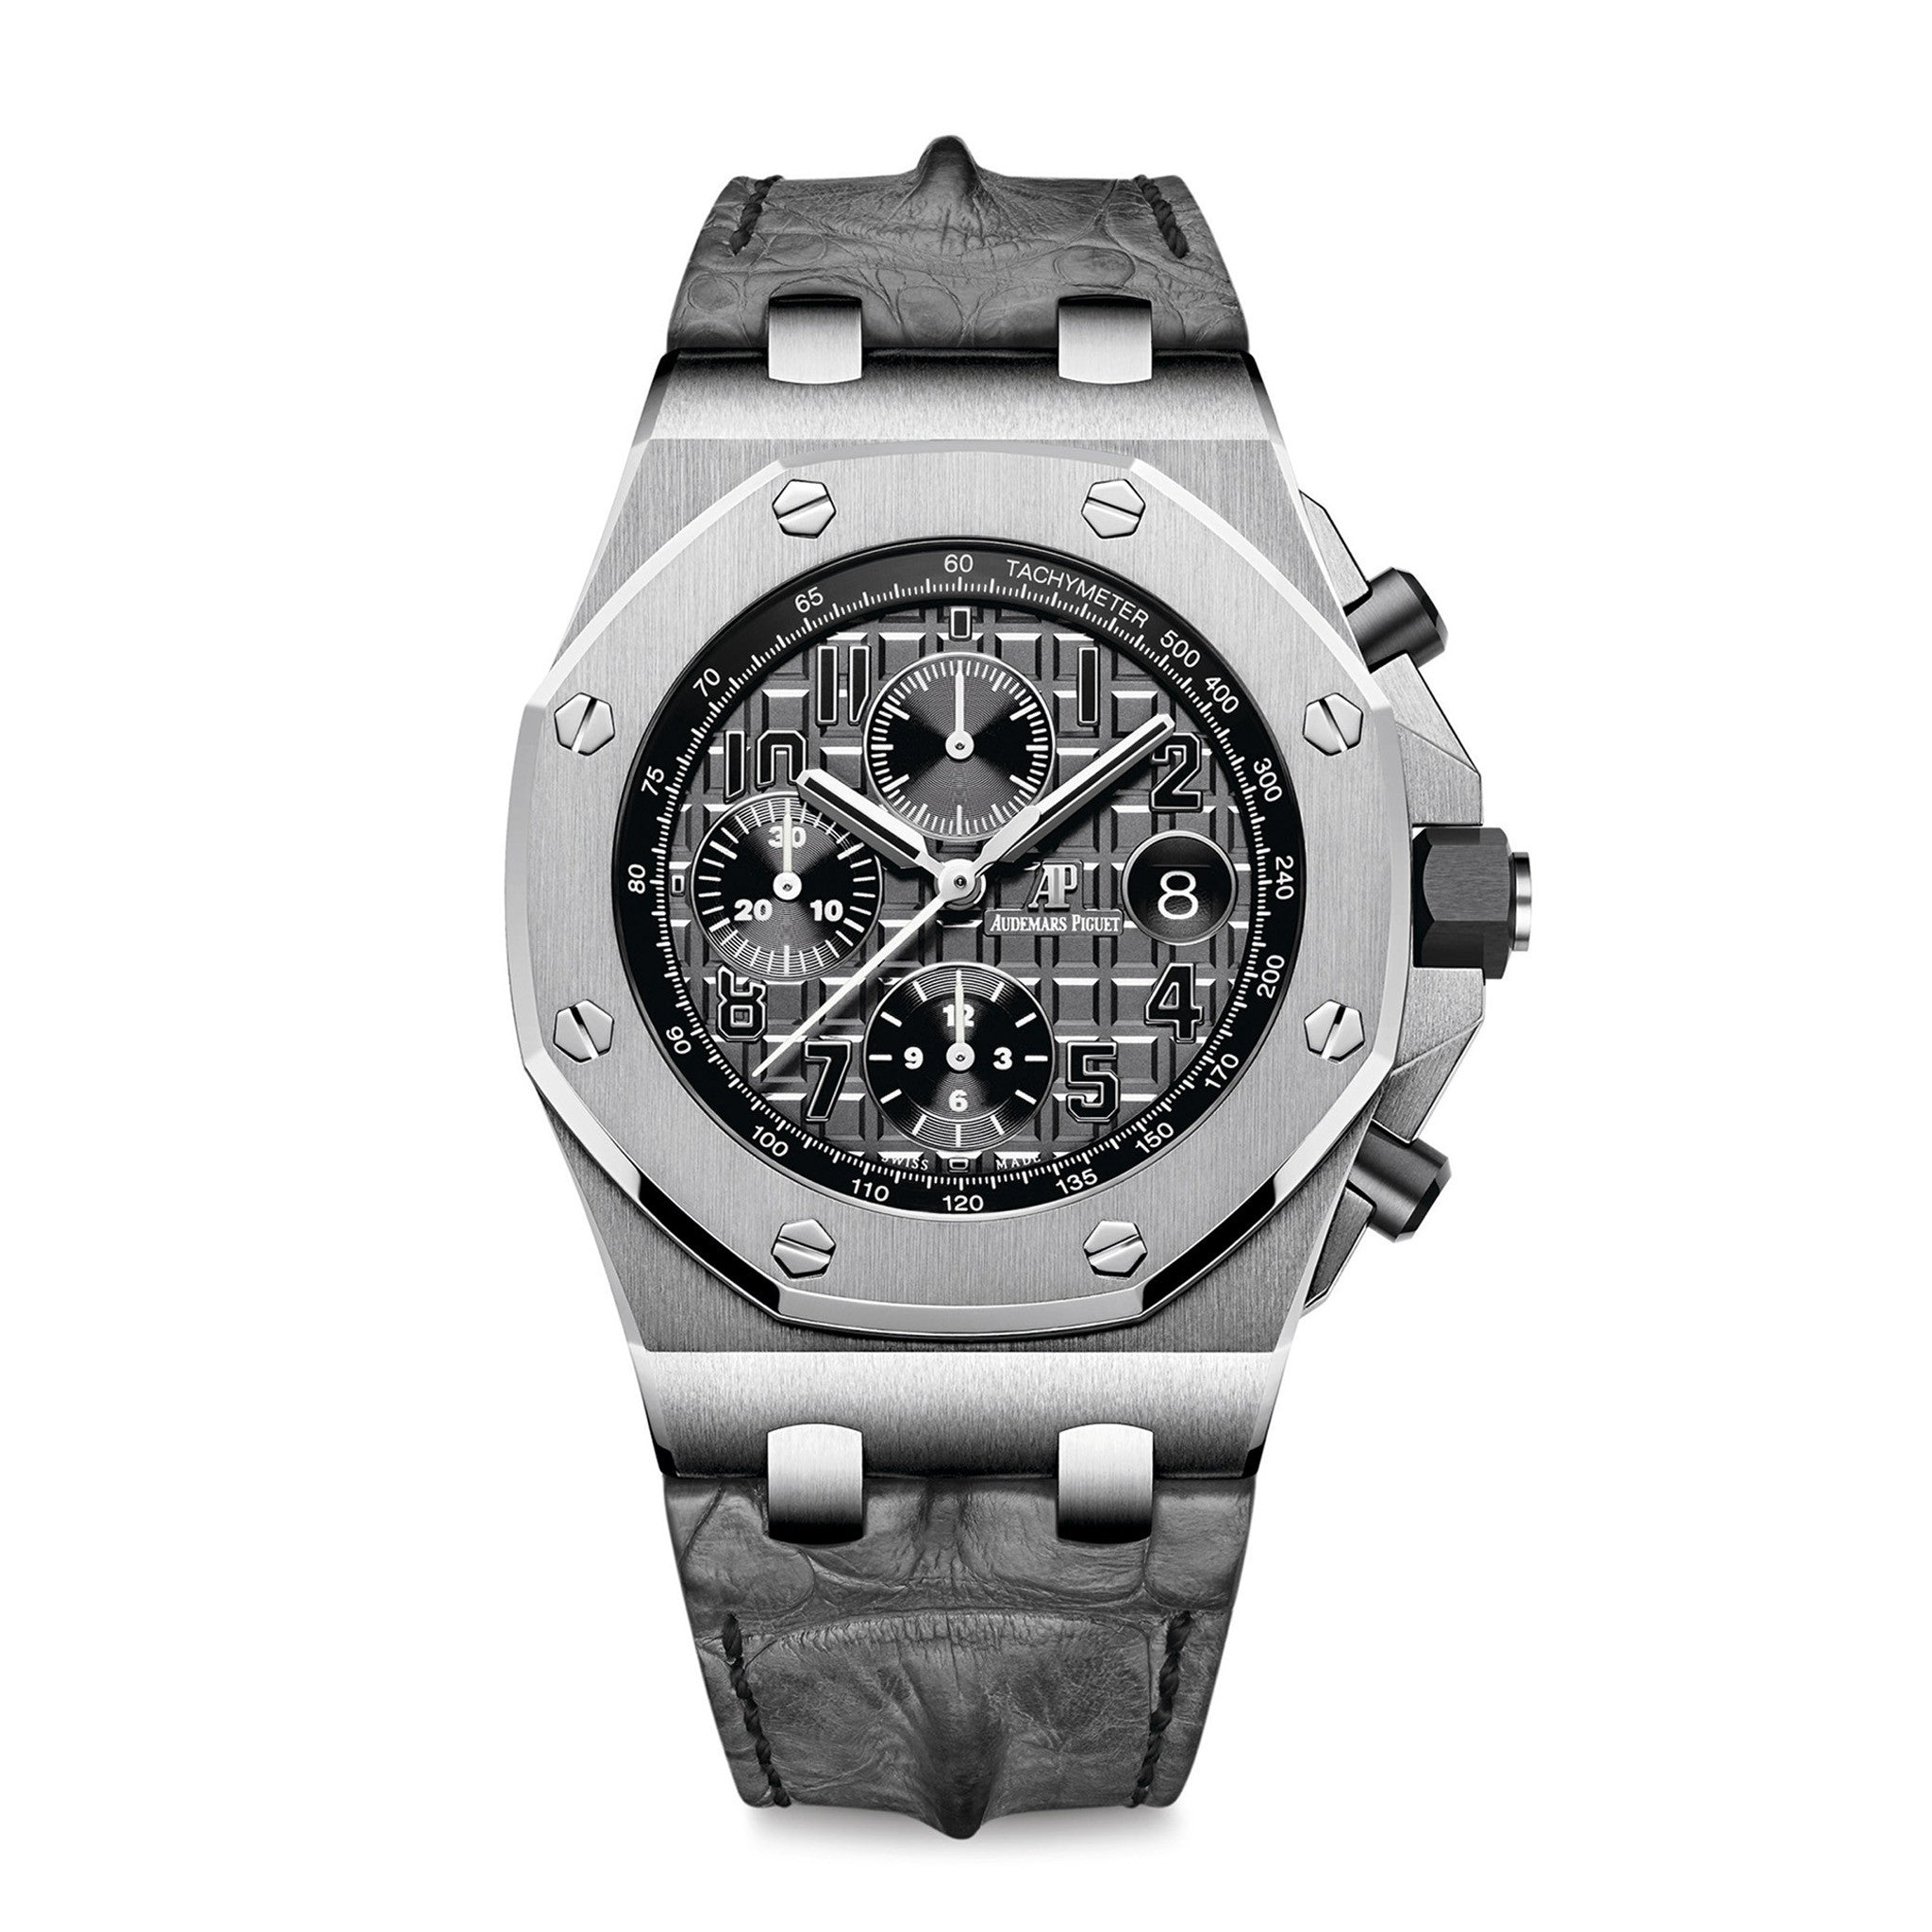 bfefb3ecf36 A101CR.01Audemars Piguet. Royal Oak Offshore Chronograph 26470ST.OO .A104CR.01